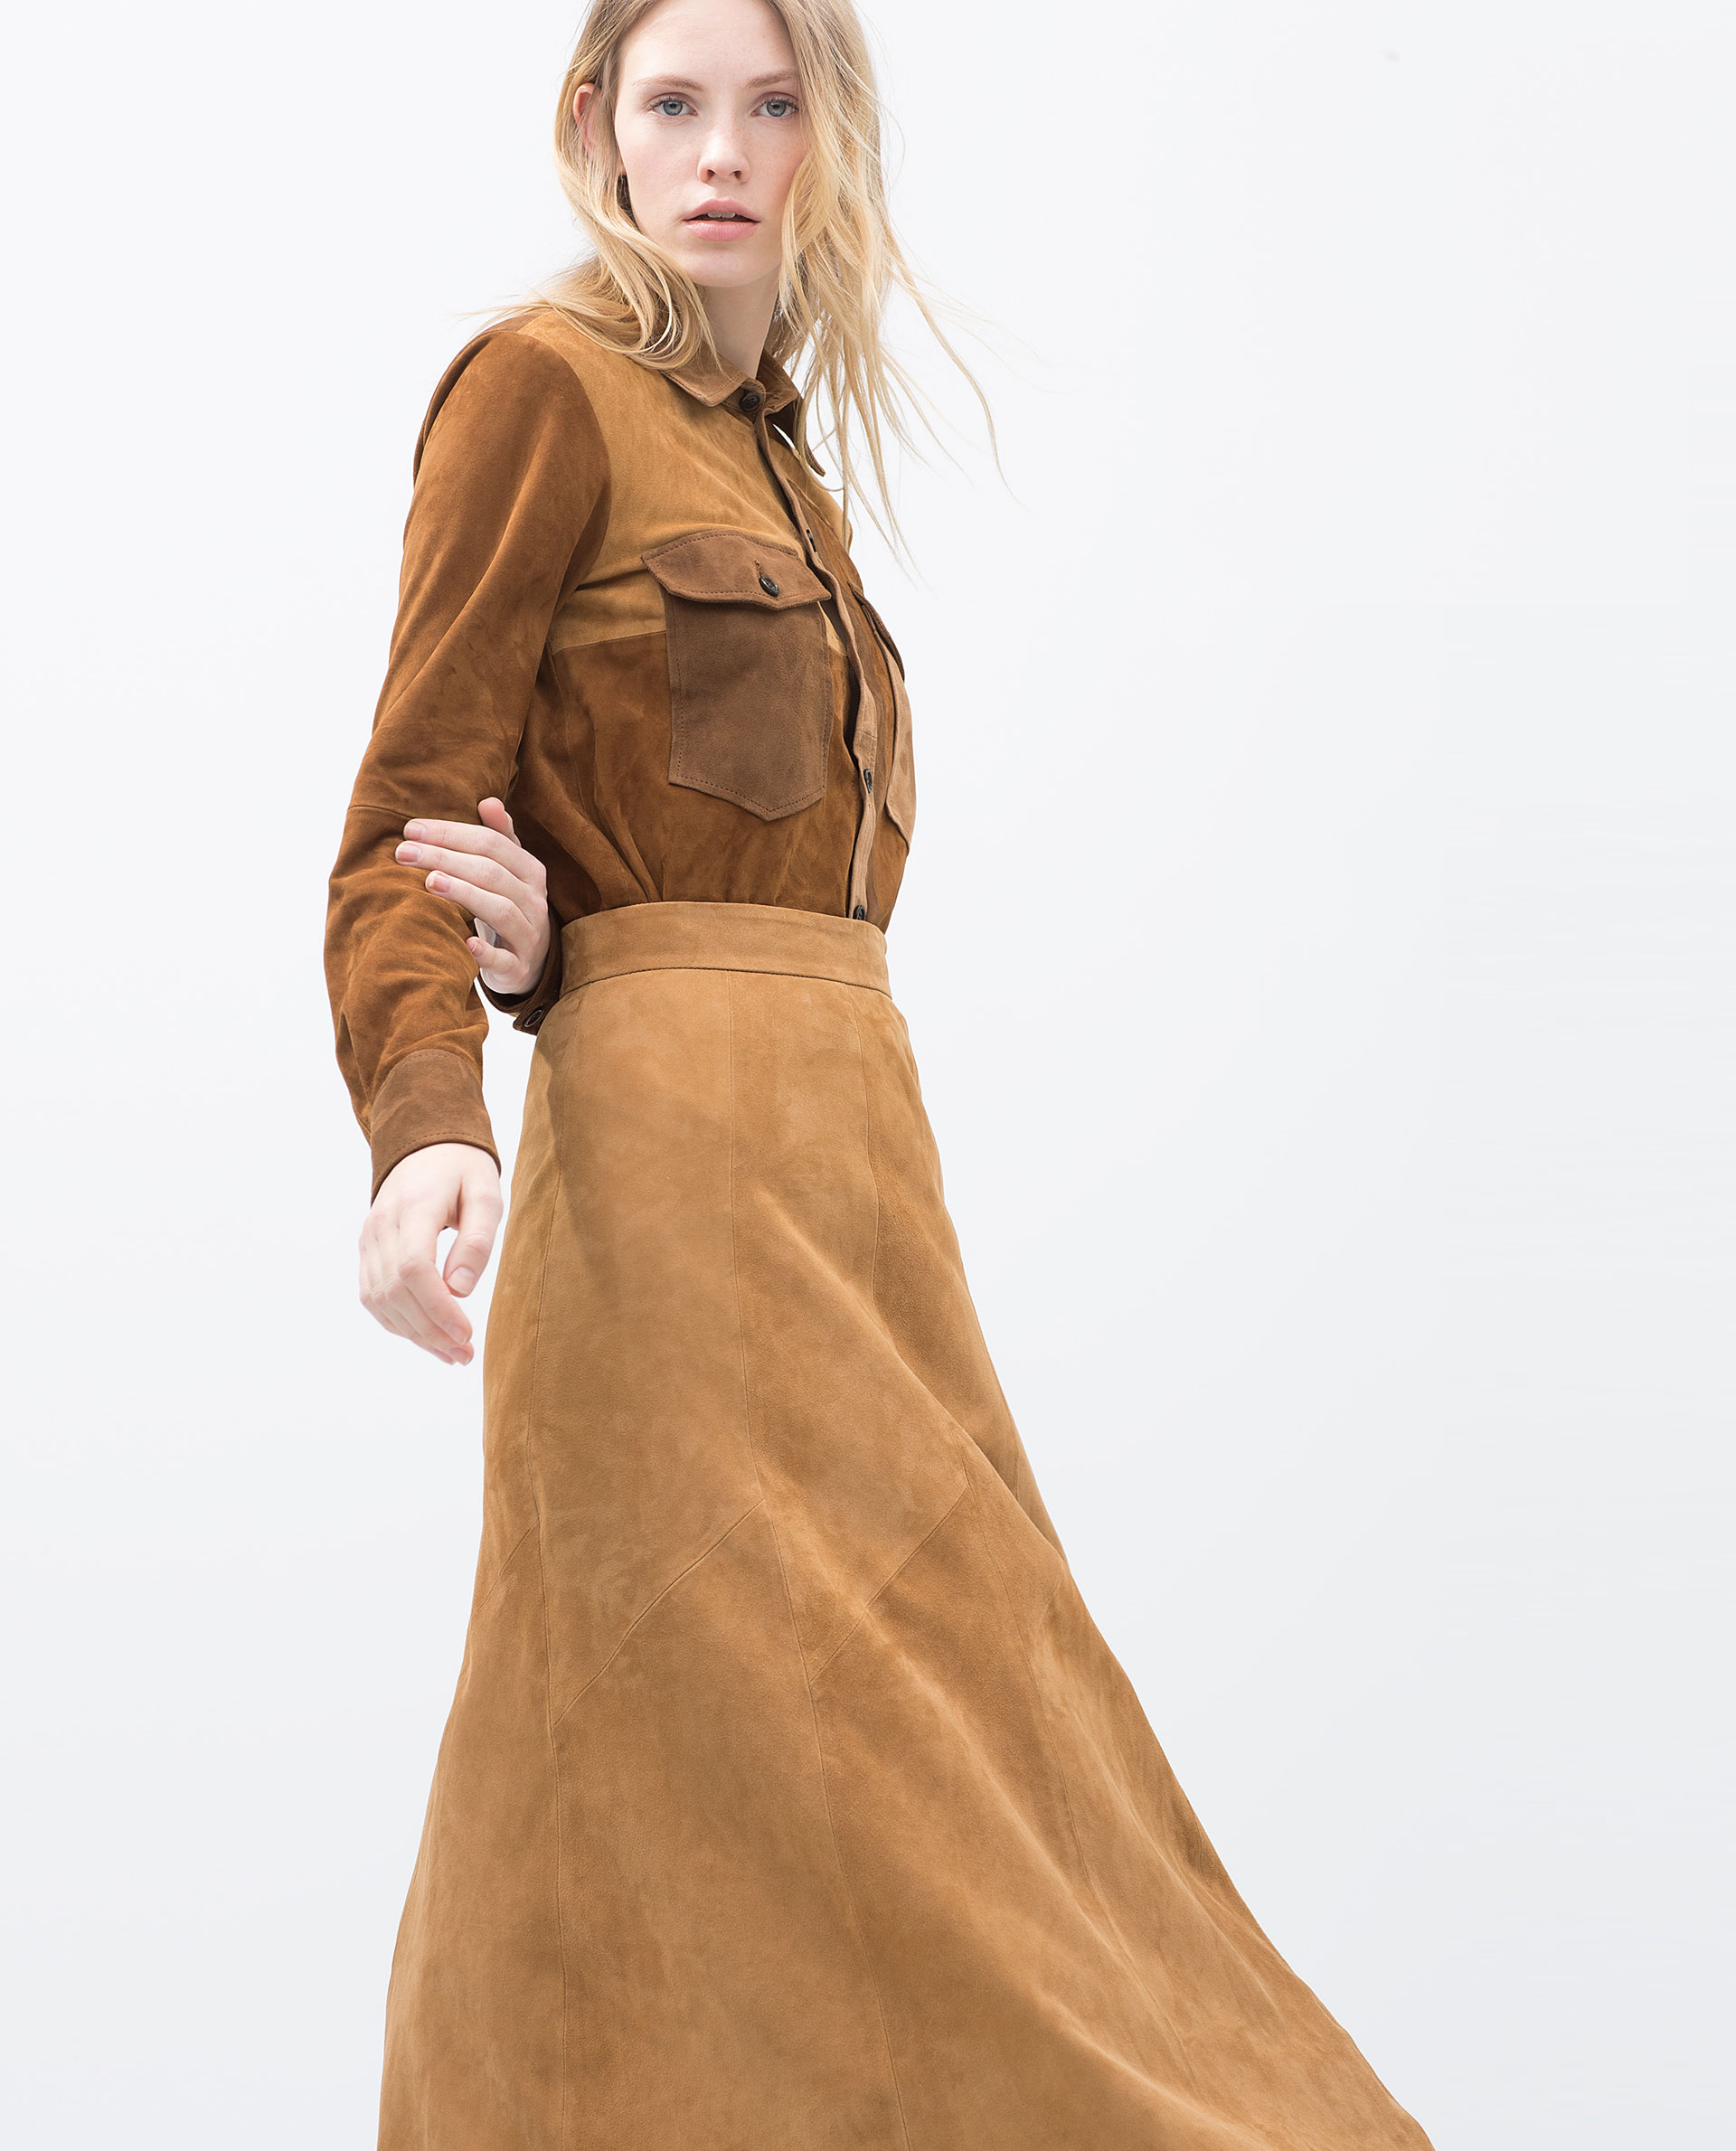 Zara Long Suede Skirt in Natural | Lyst